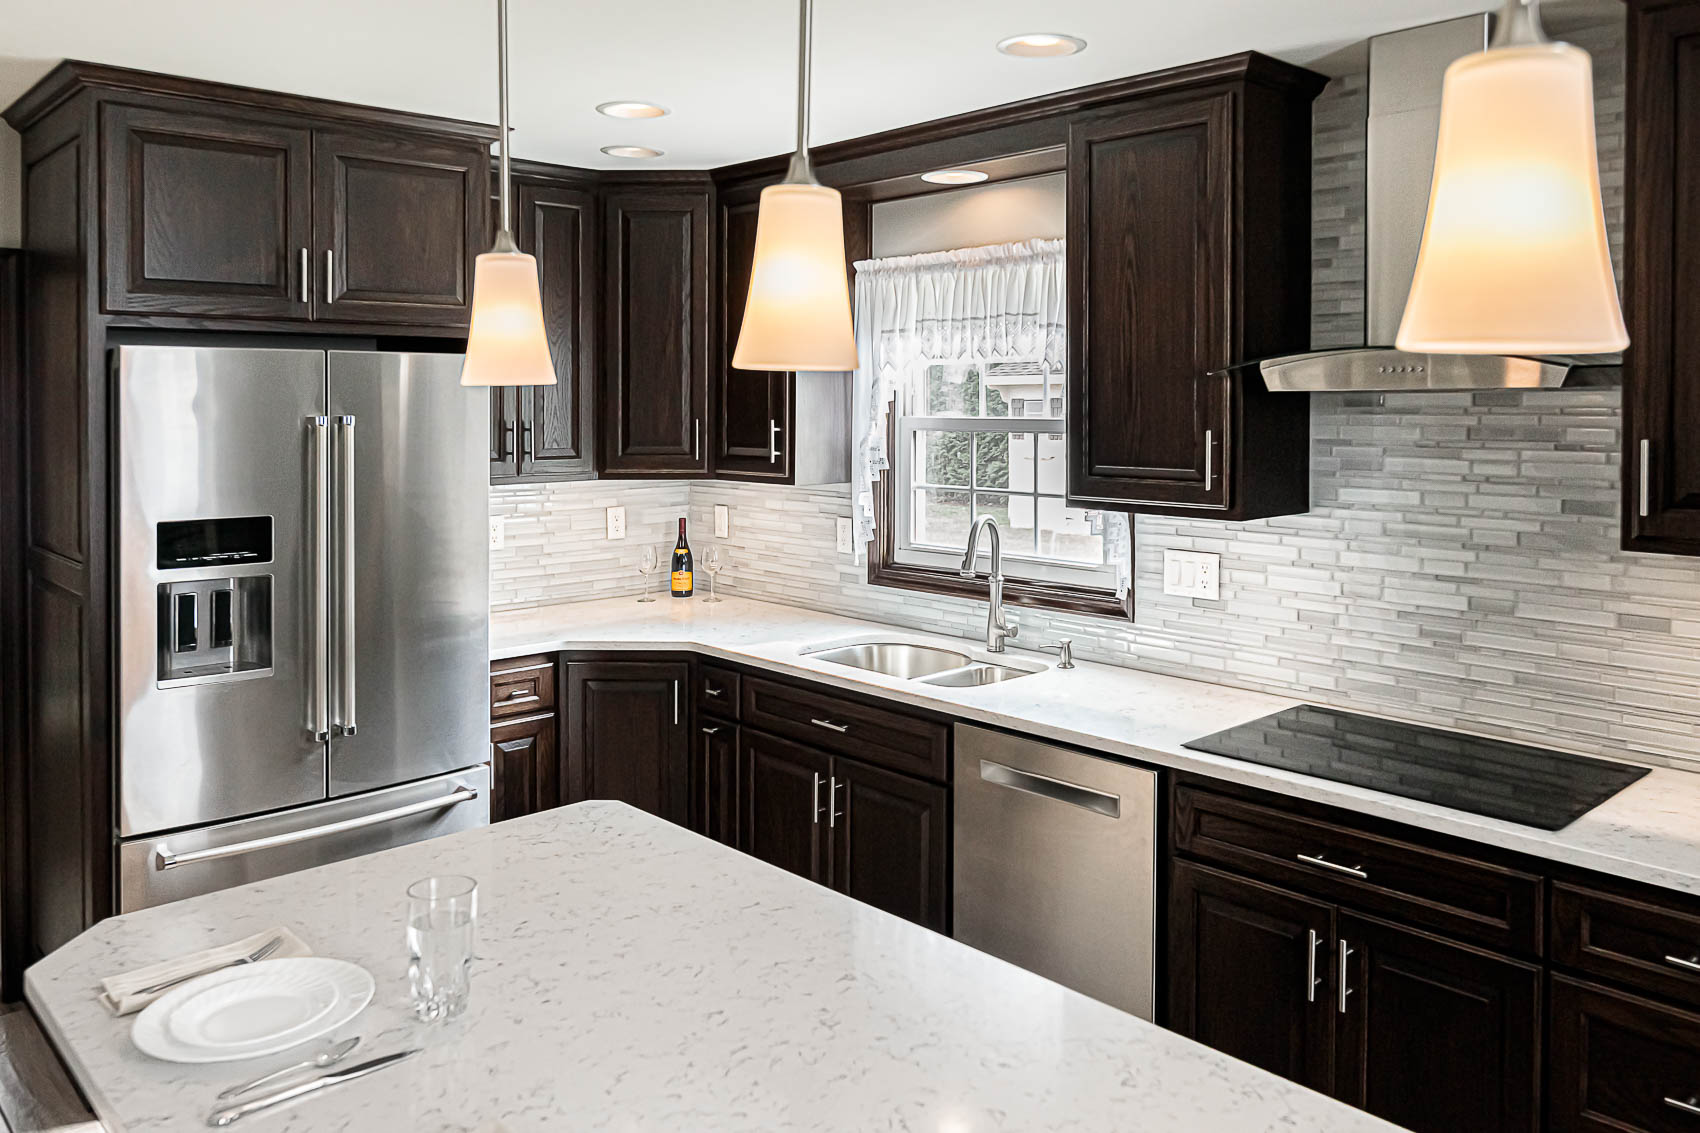 Trupe S Cramped Kitchen Remodel In Reading Pa All Renovation Design Llc